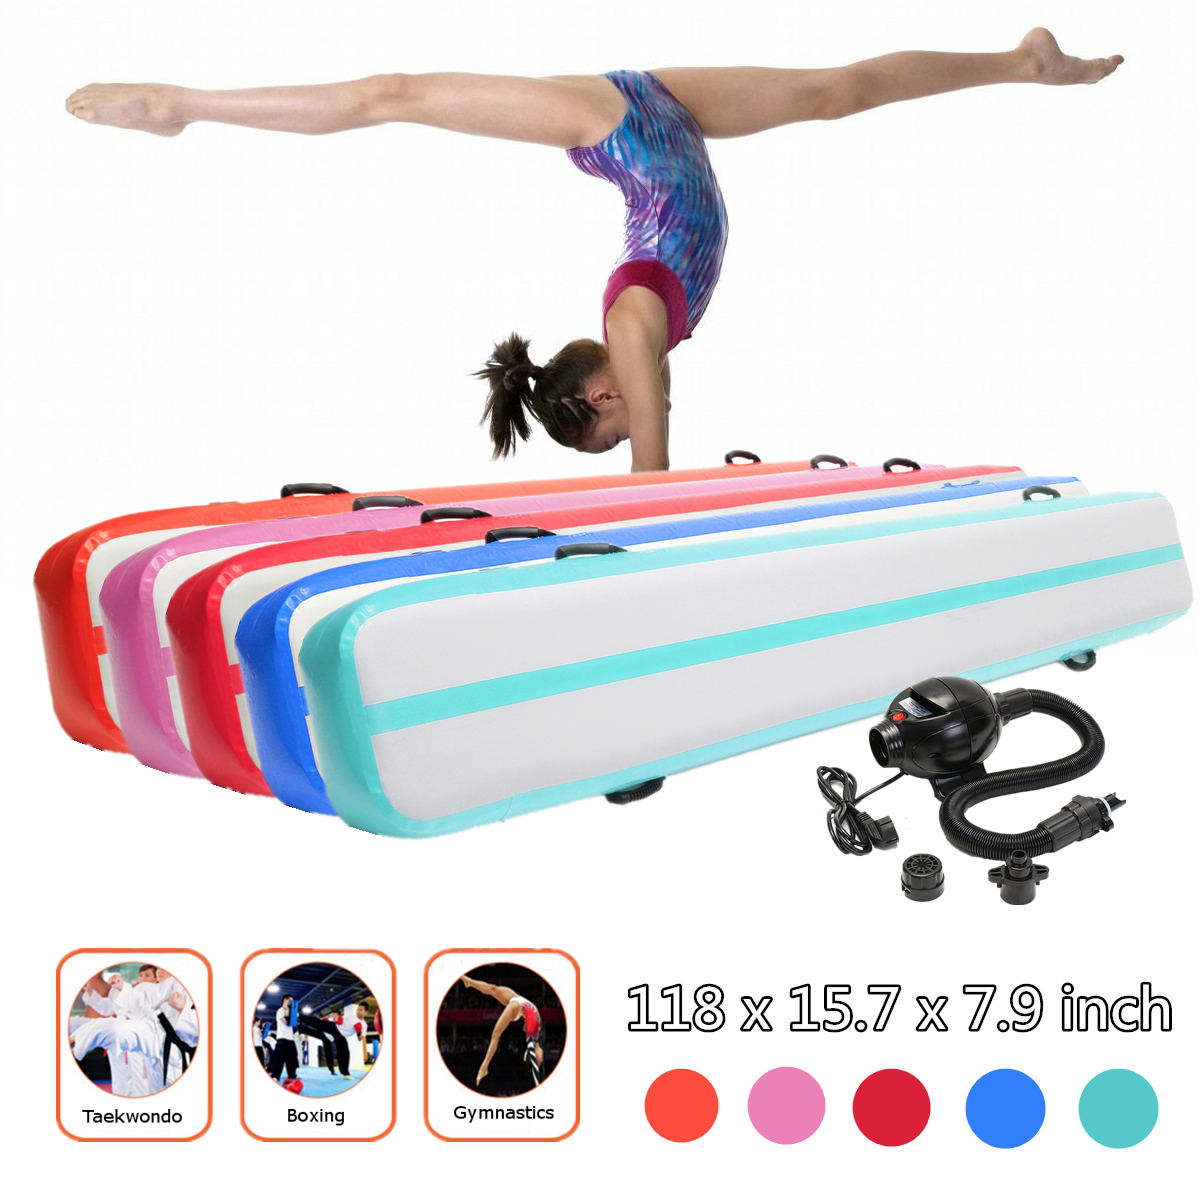 HOT 300*40*20cm Inflatable Air Track Tumbling Floor Gymnastics Practice Training Pad GYM Mat 8m gymnastics air track fitness exercise gym air tumbling mat training inflatable track floor home gymnastic high quality